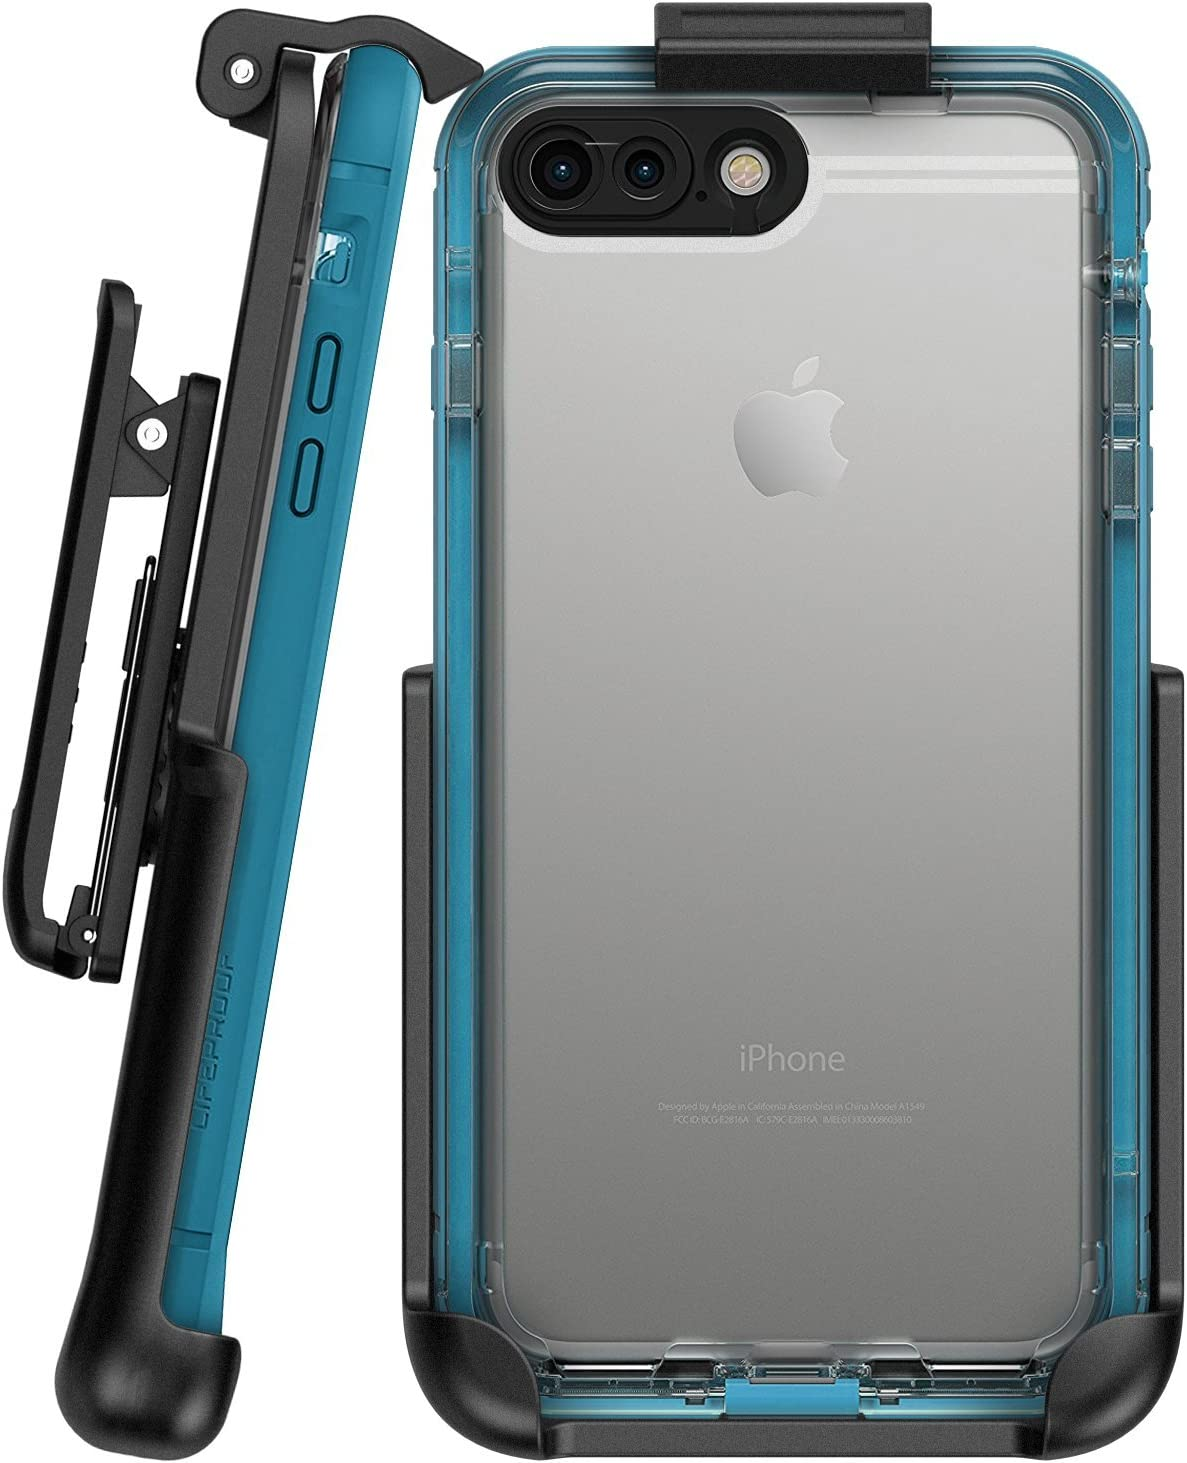 "Encased Belt Clip Holster Compatible with Lifeproof Nuud Case - iPhone 8 Plus 5.5"" (case Not Included)"